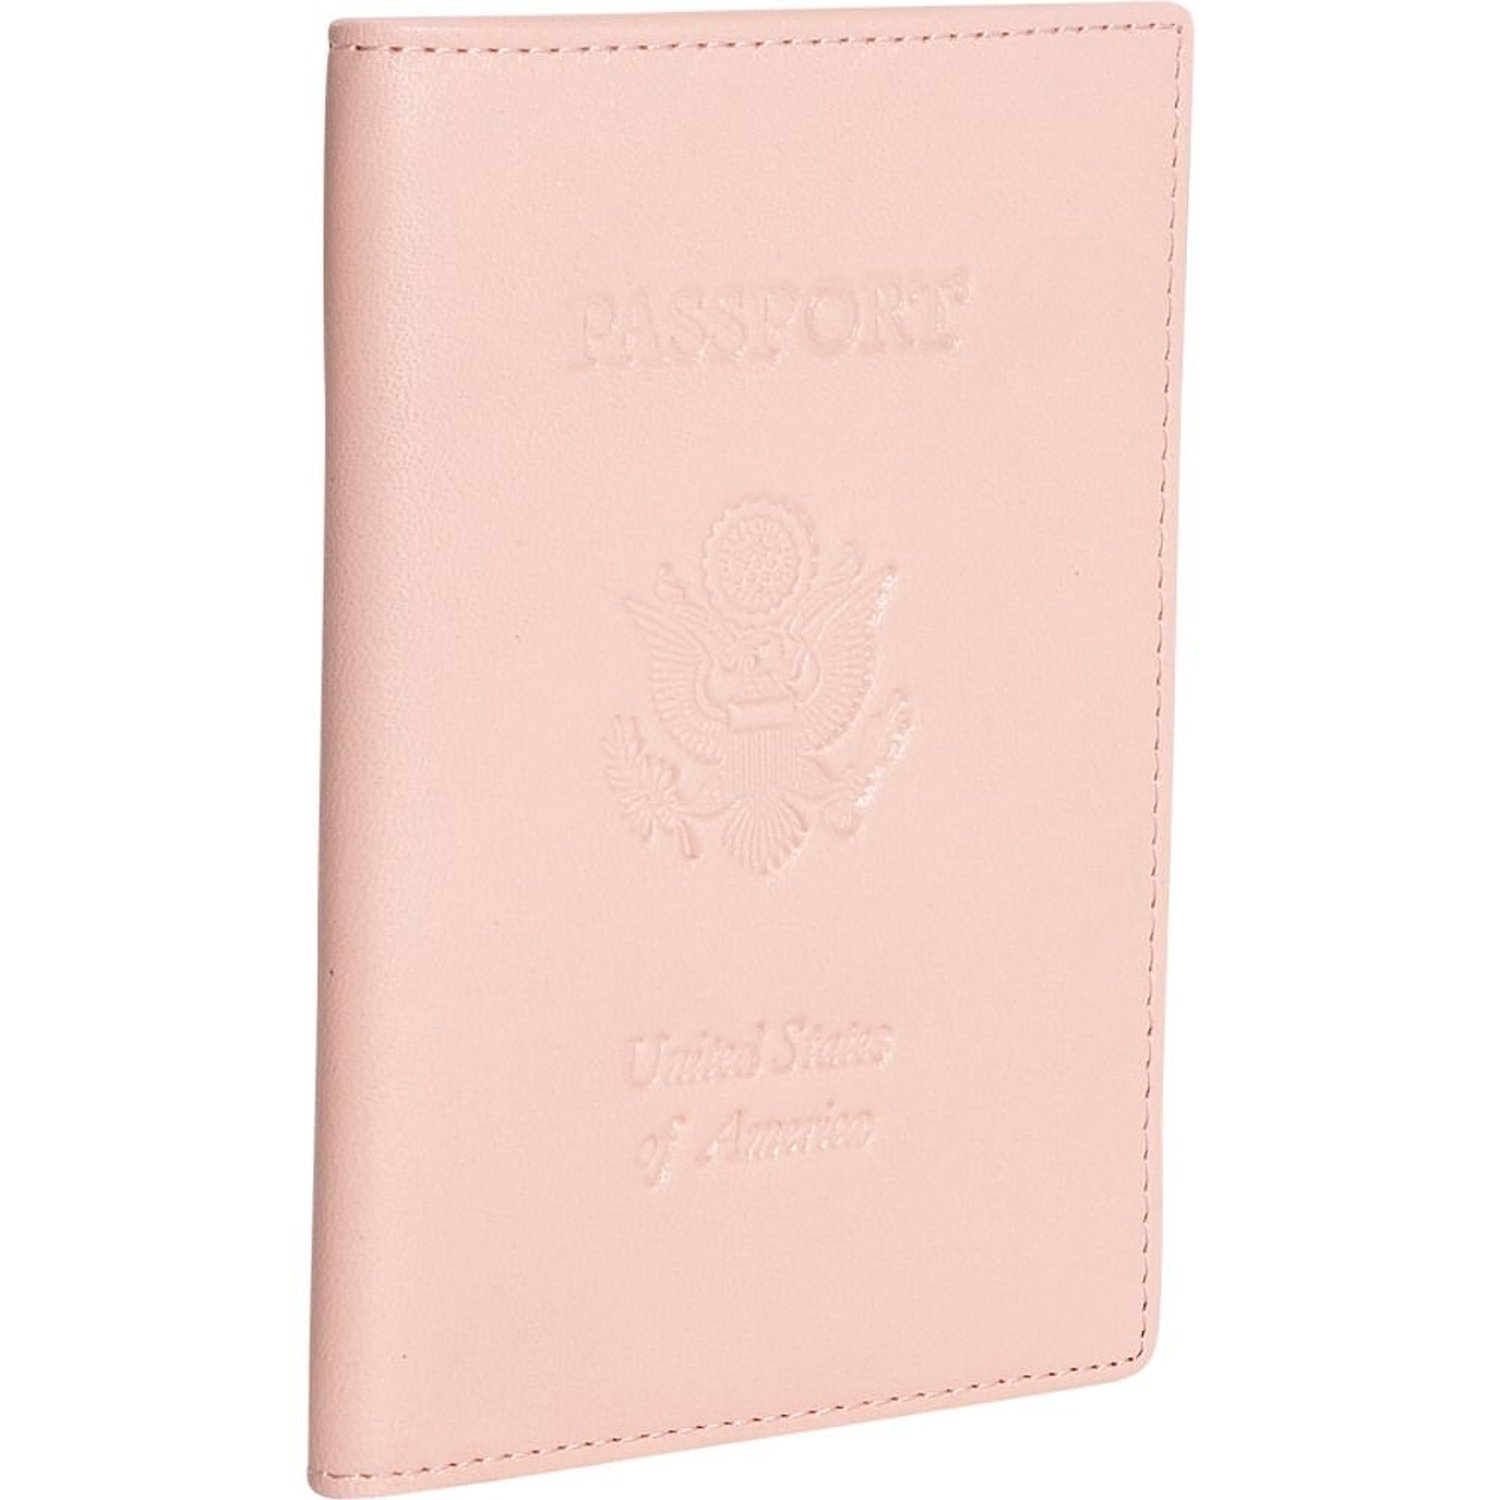 Royce Leather Passport Holder and Travel Document Organizer in Leather, Light Pink 3 by Royce Leather